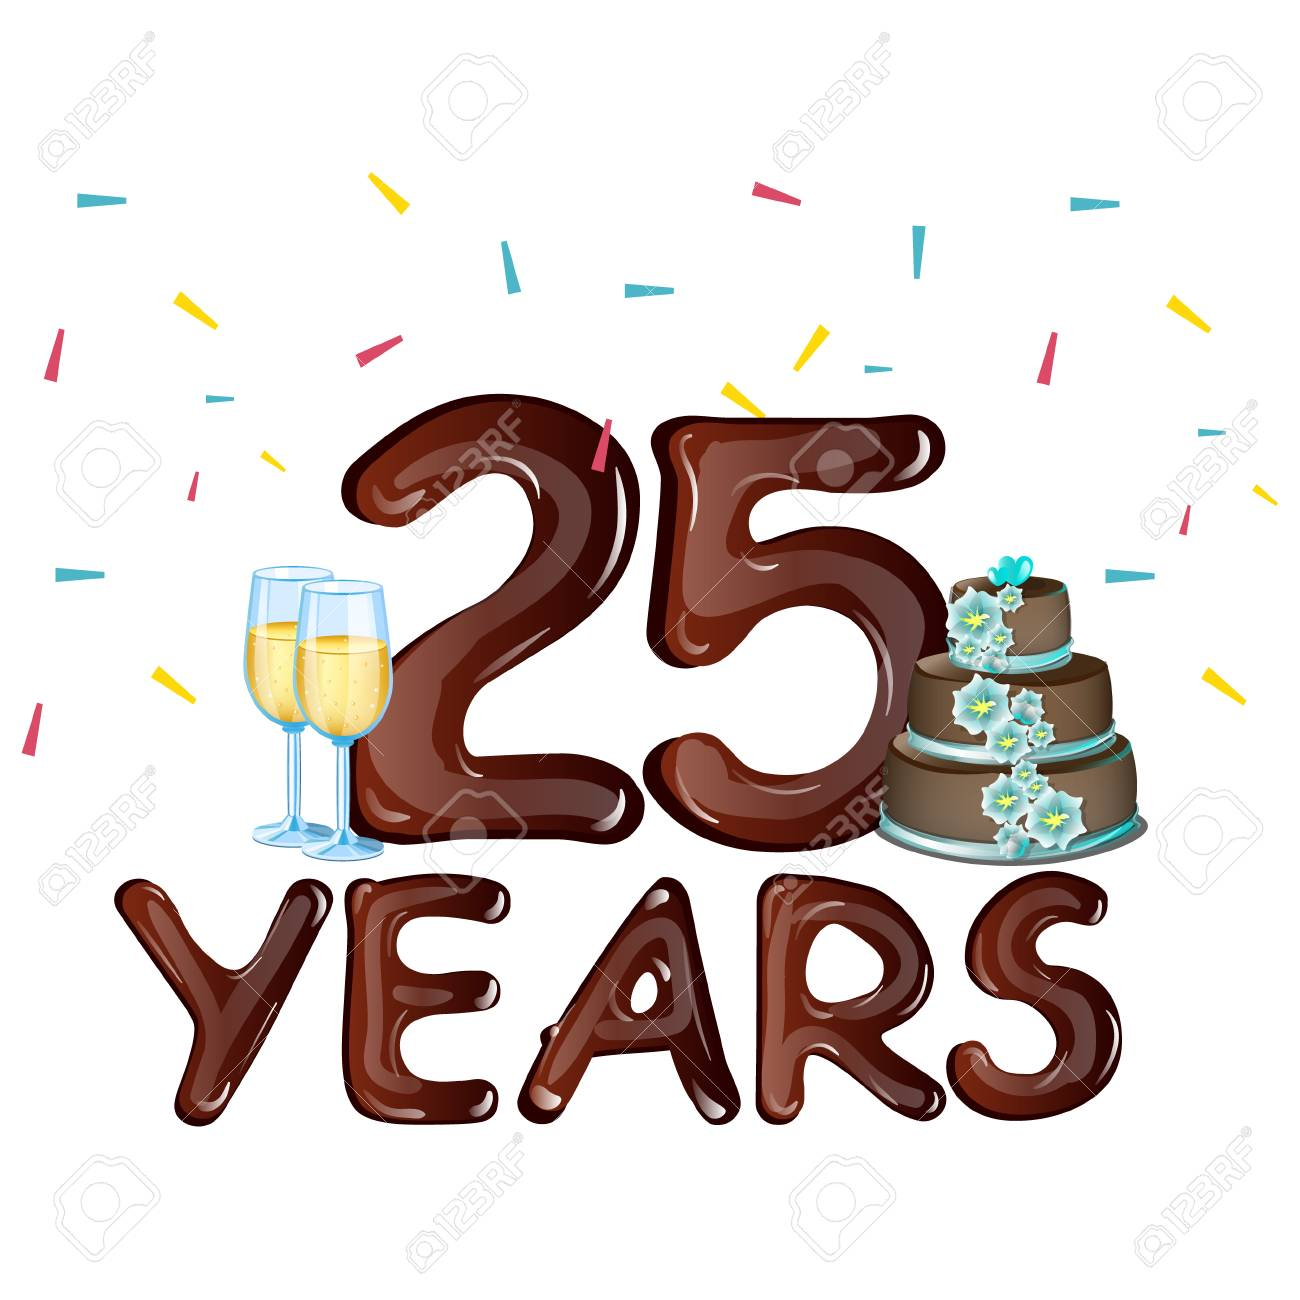 25 years anniversary celebration card royalty free cliparts vectors